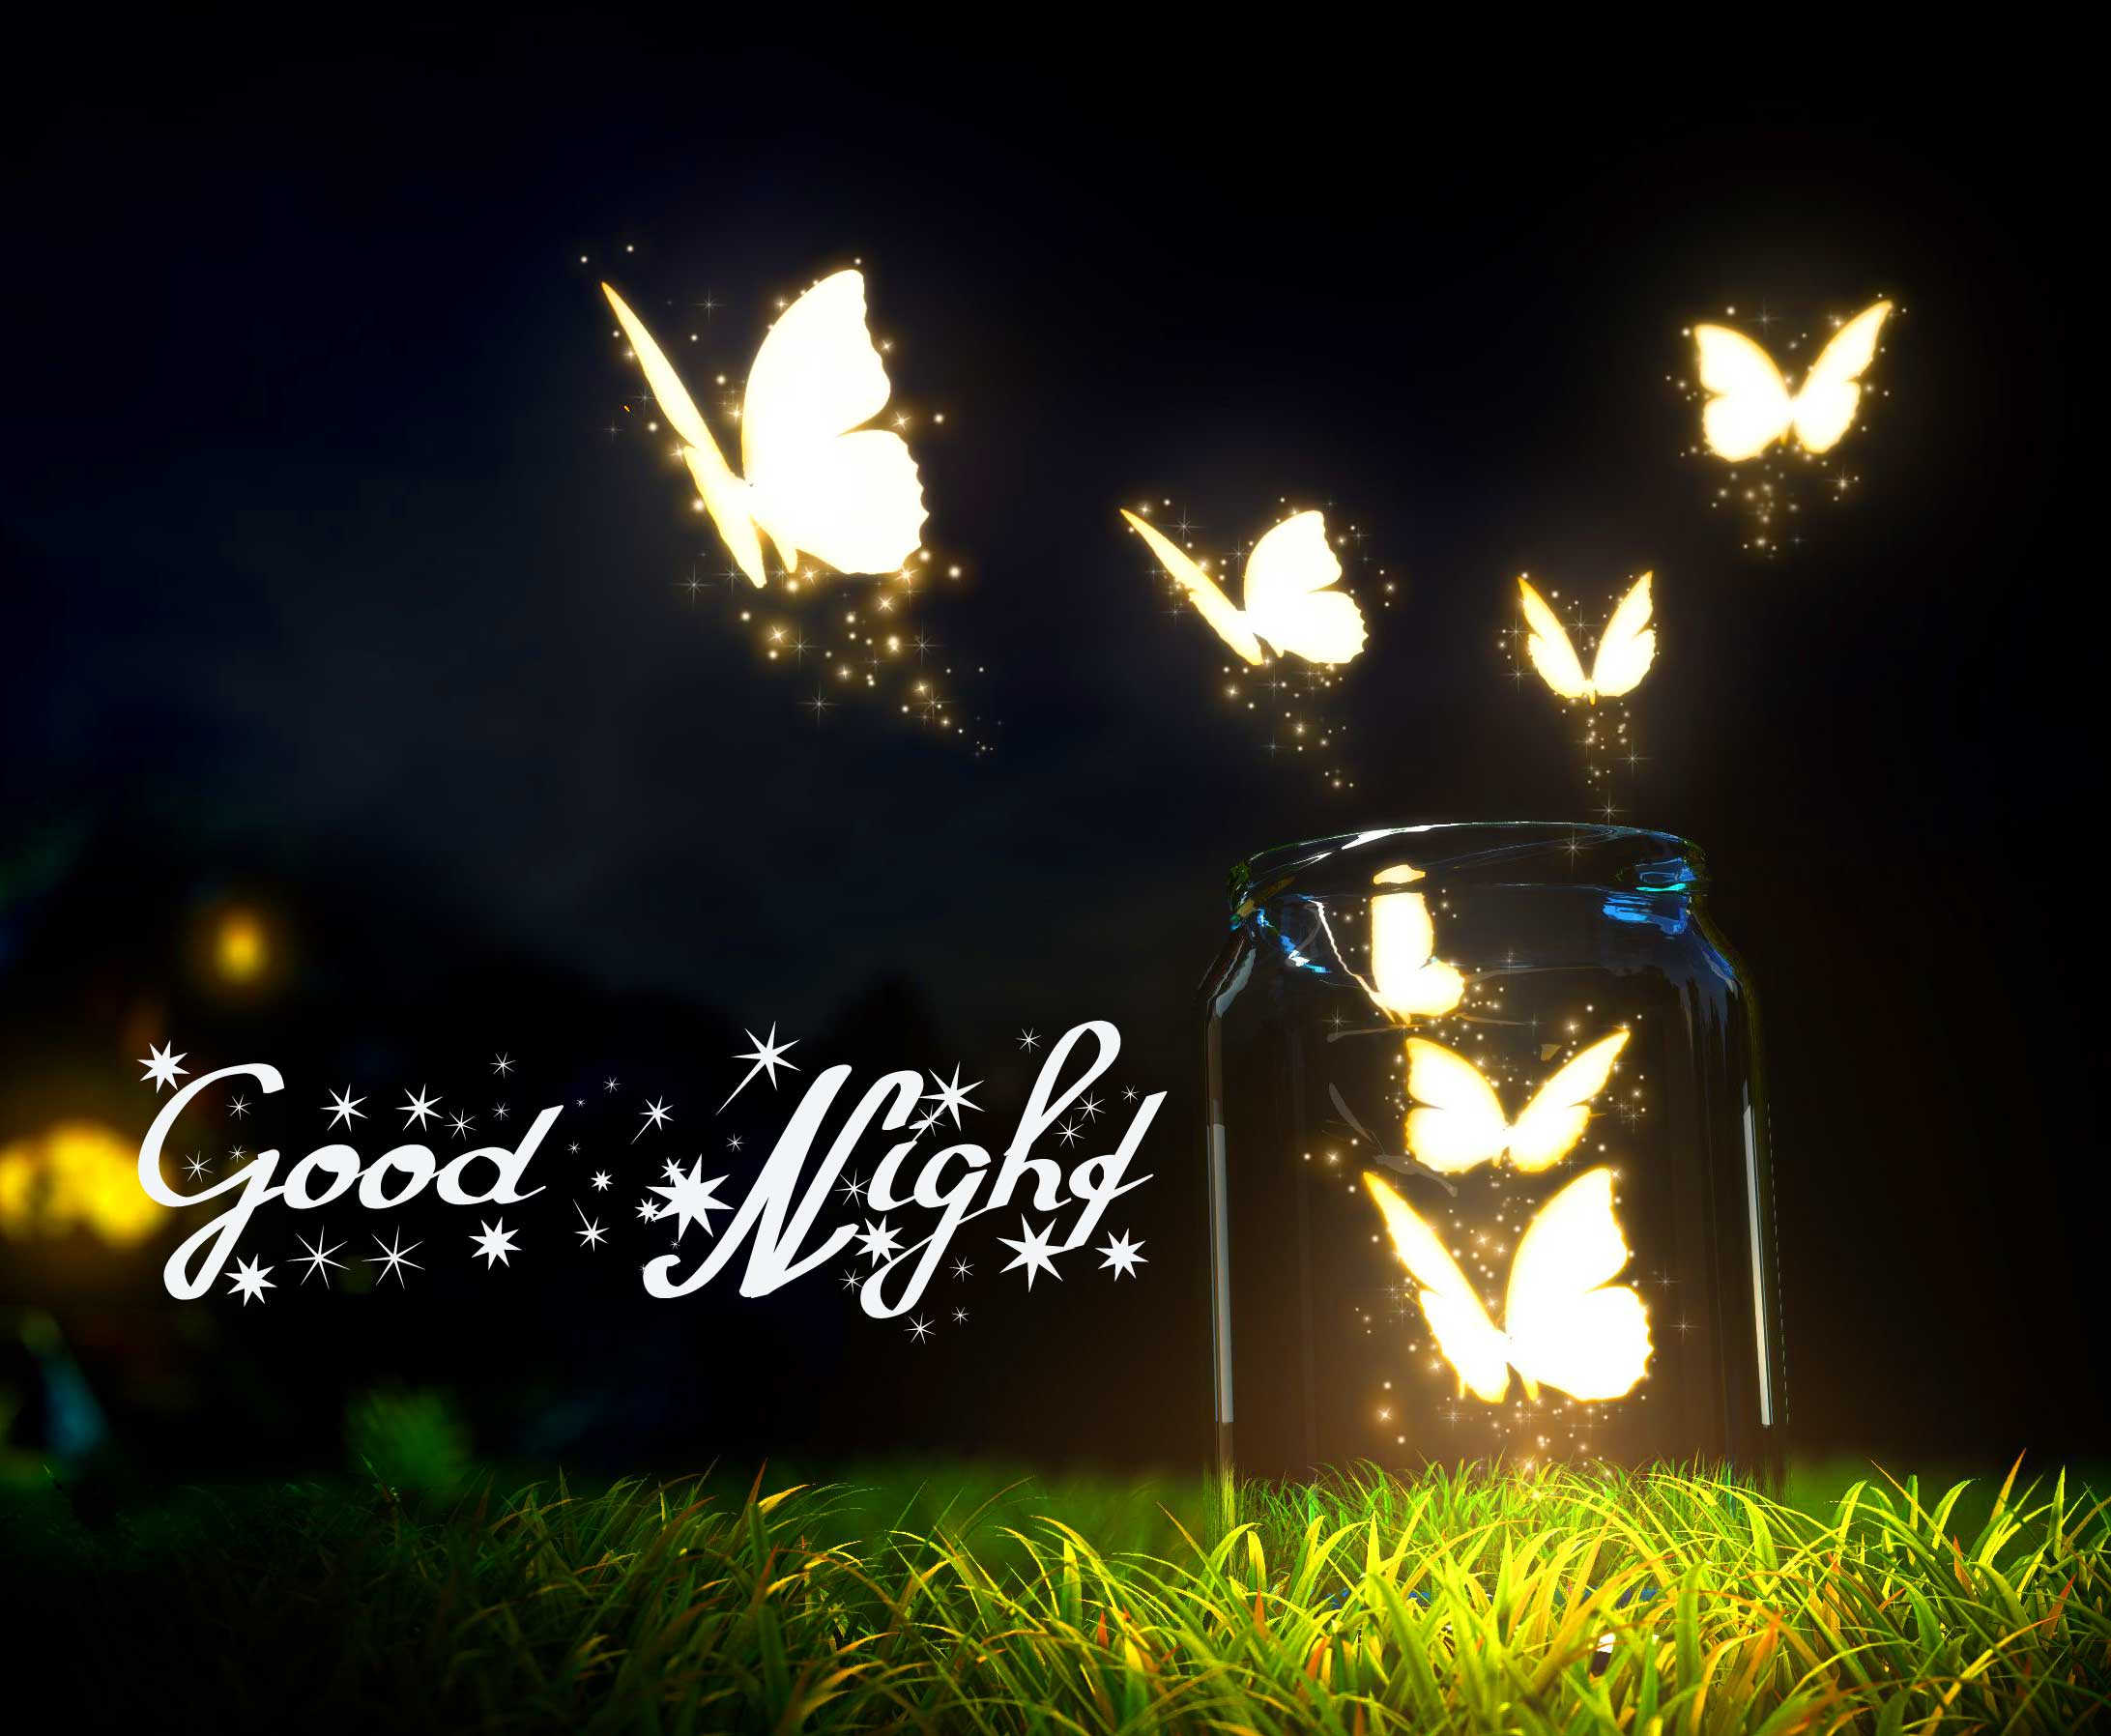 Dazzling Butterflies with Good Night Wish